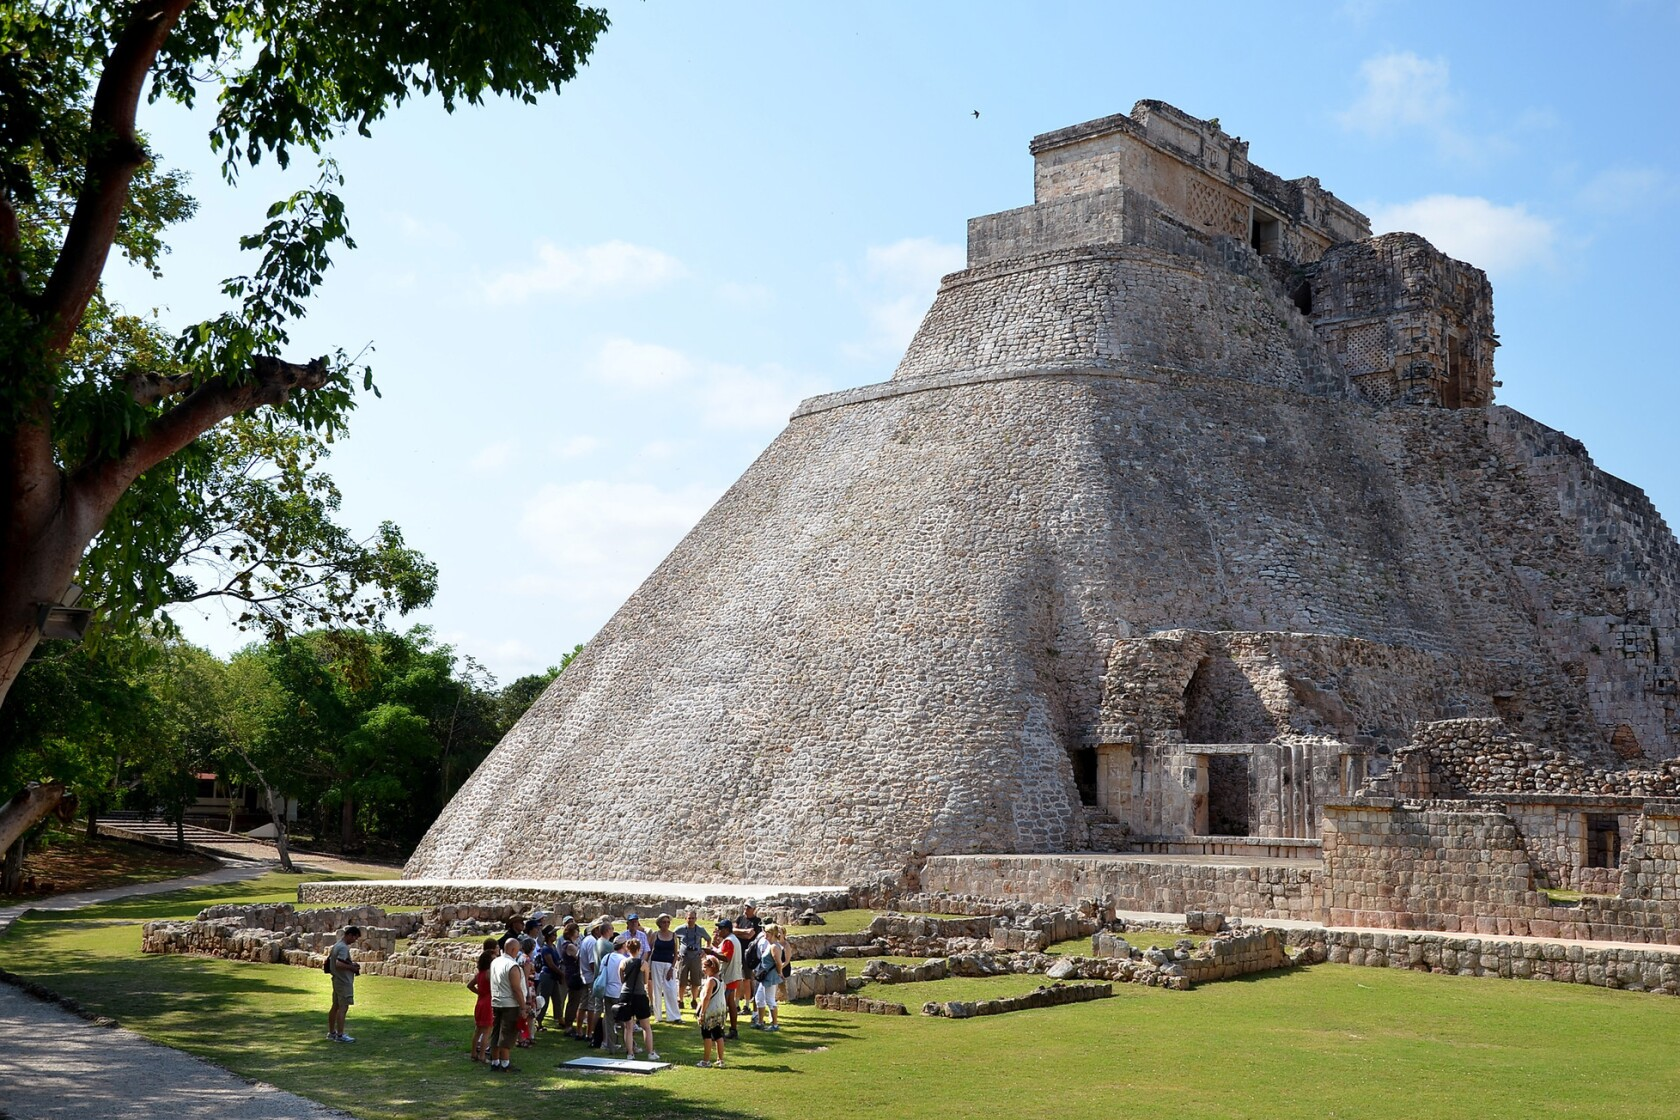 How to get to the Yucatán Peninsula in Mexico